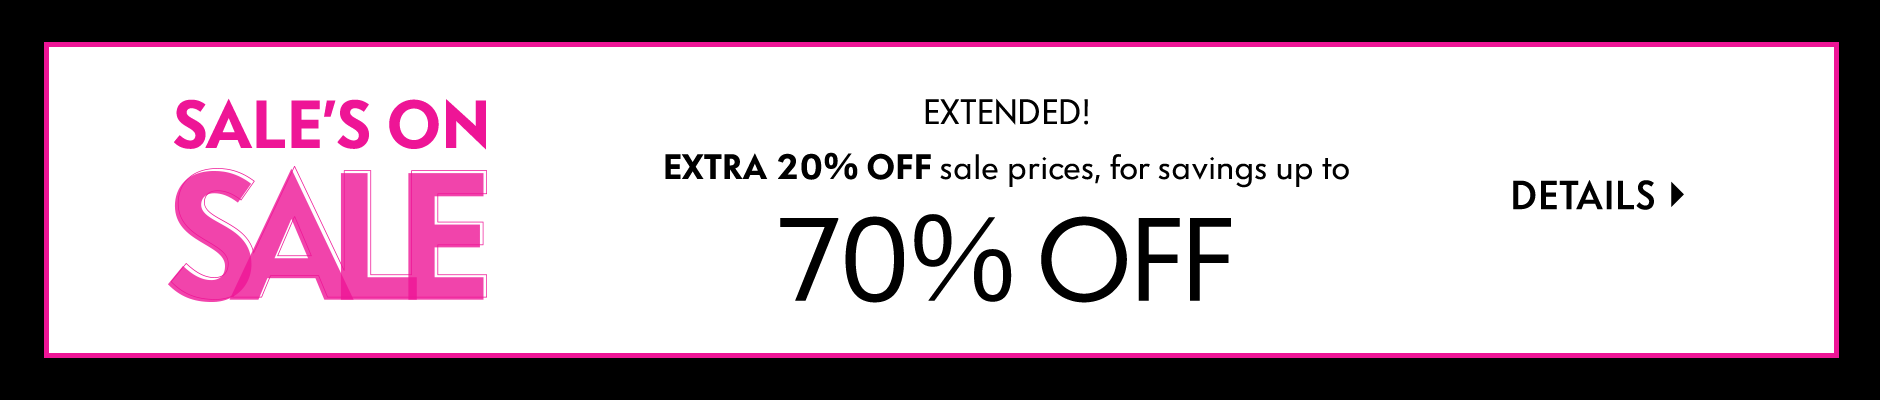 Extended! Sale's On Sale - Extra 20% off sale & clearance prices